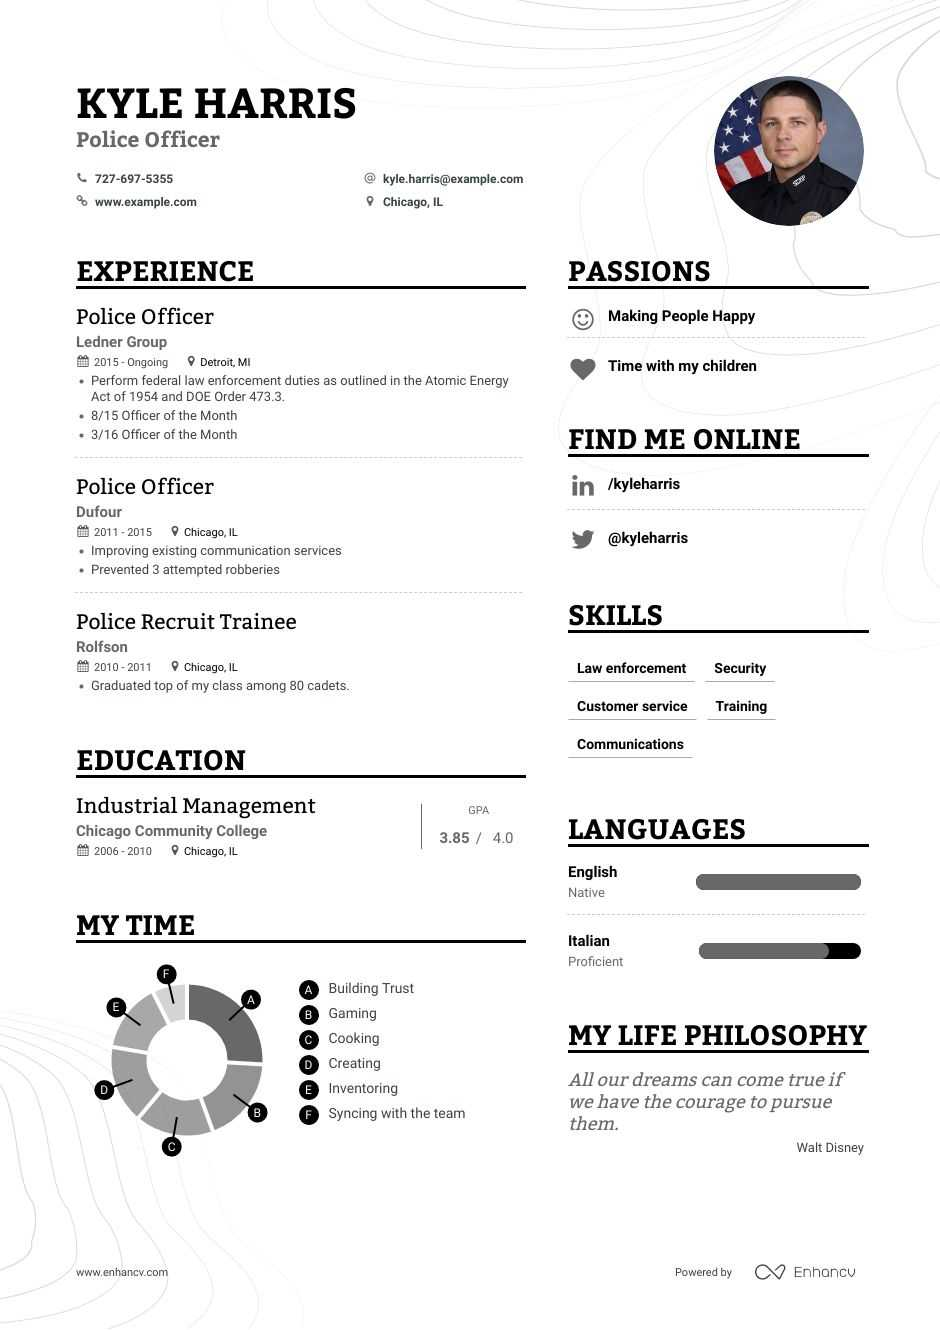 top police officer resume examples expert tips enhancv investment banking operations Resume Police Officer Resume Examples